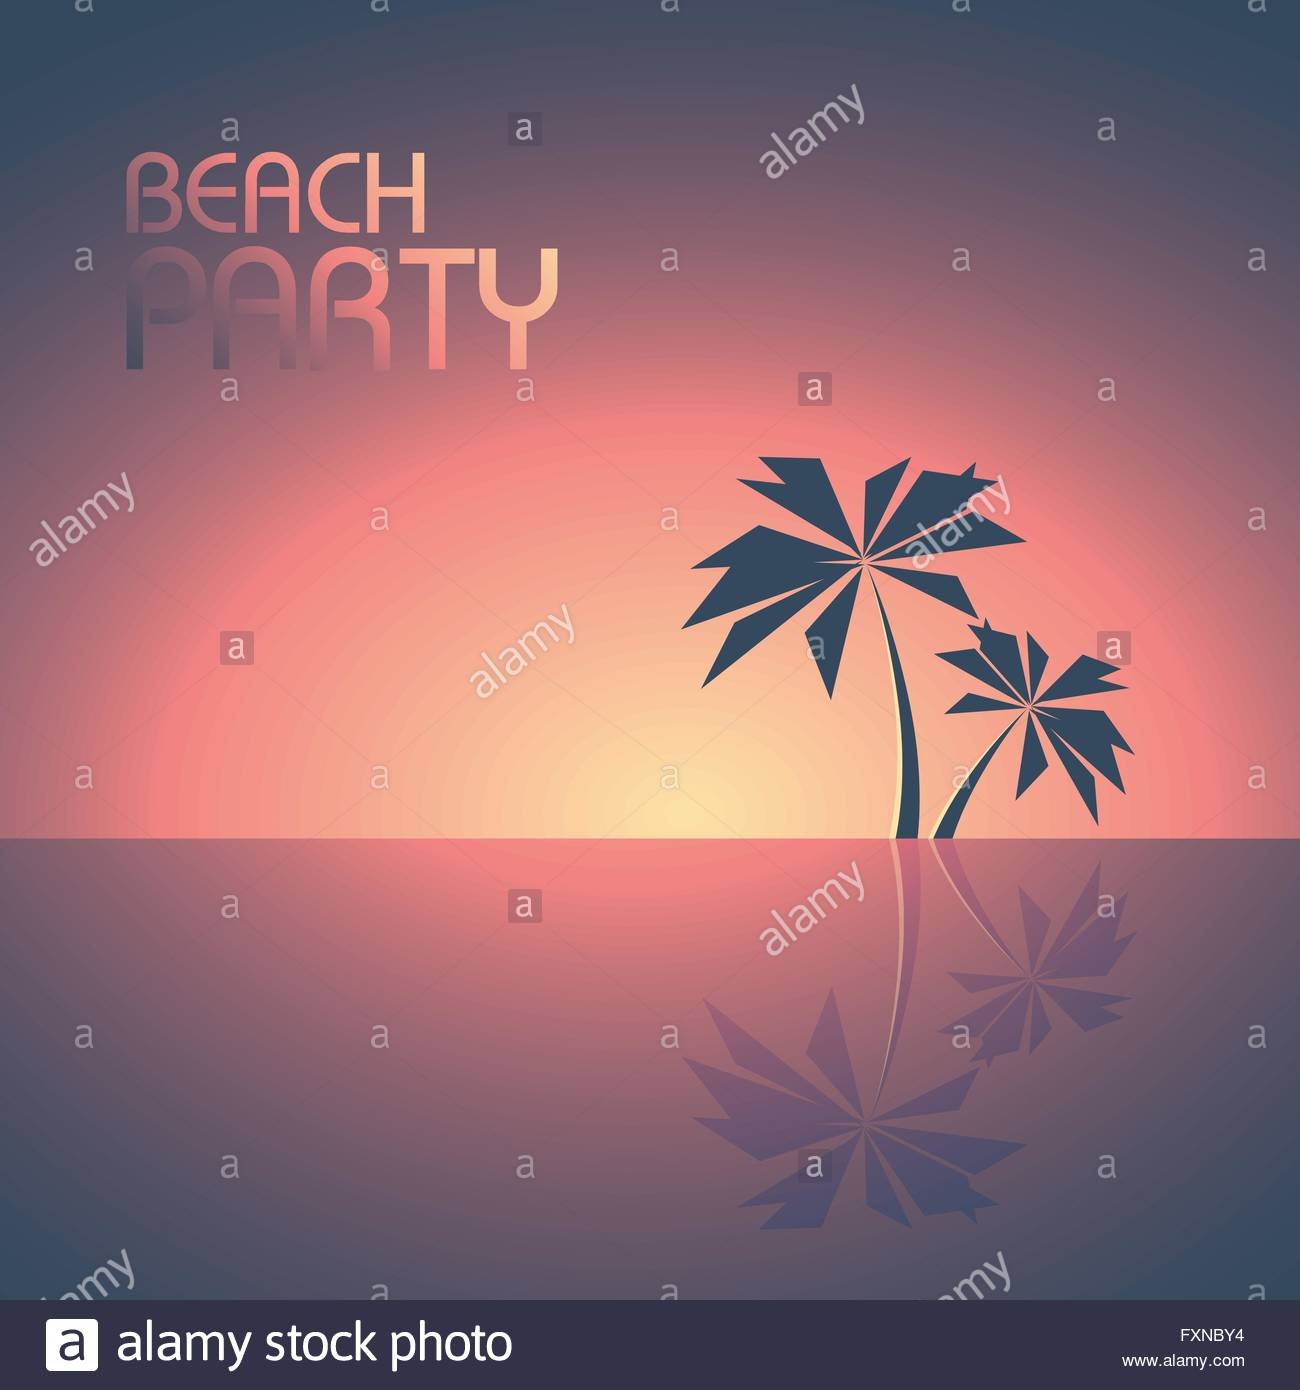 beach party poster template with palm trees on the horizon vector